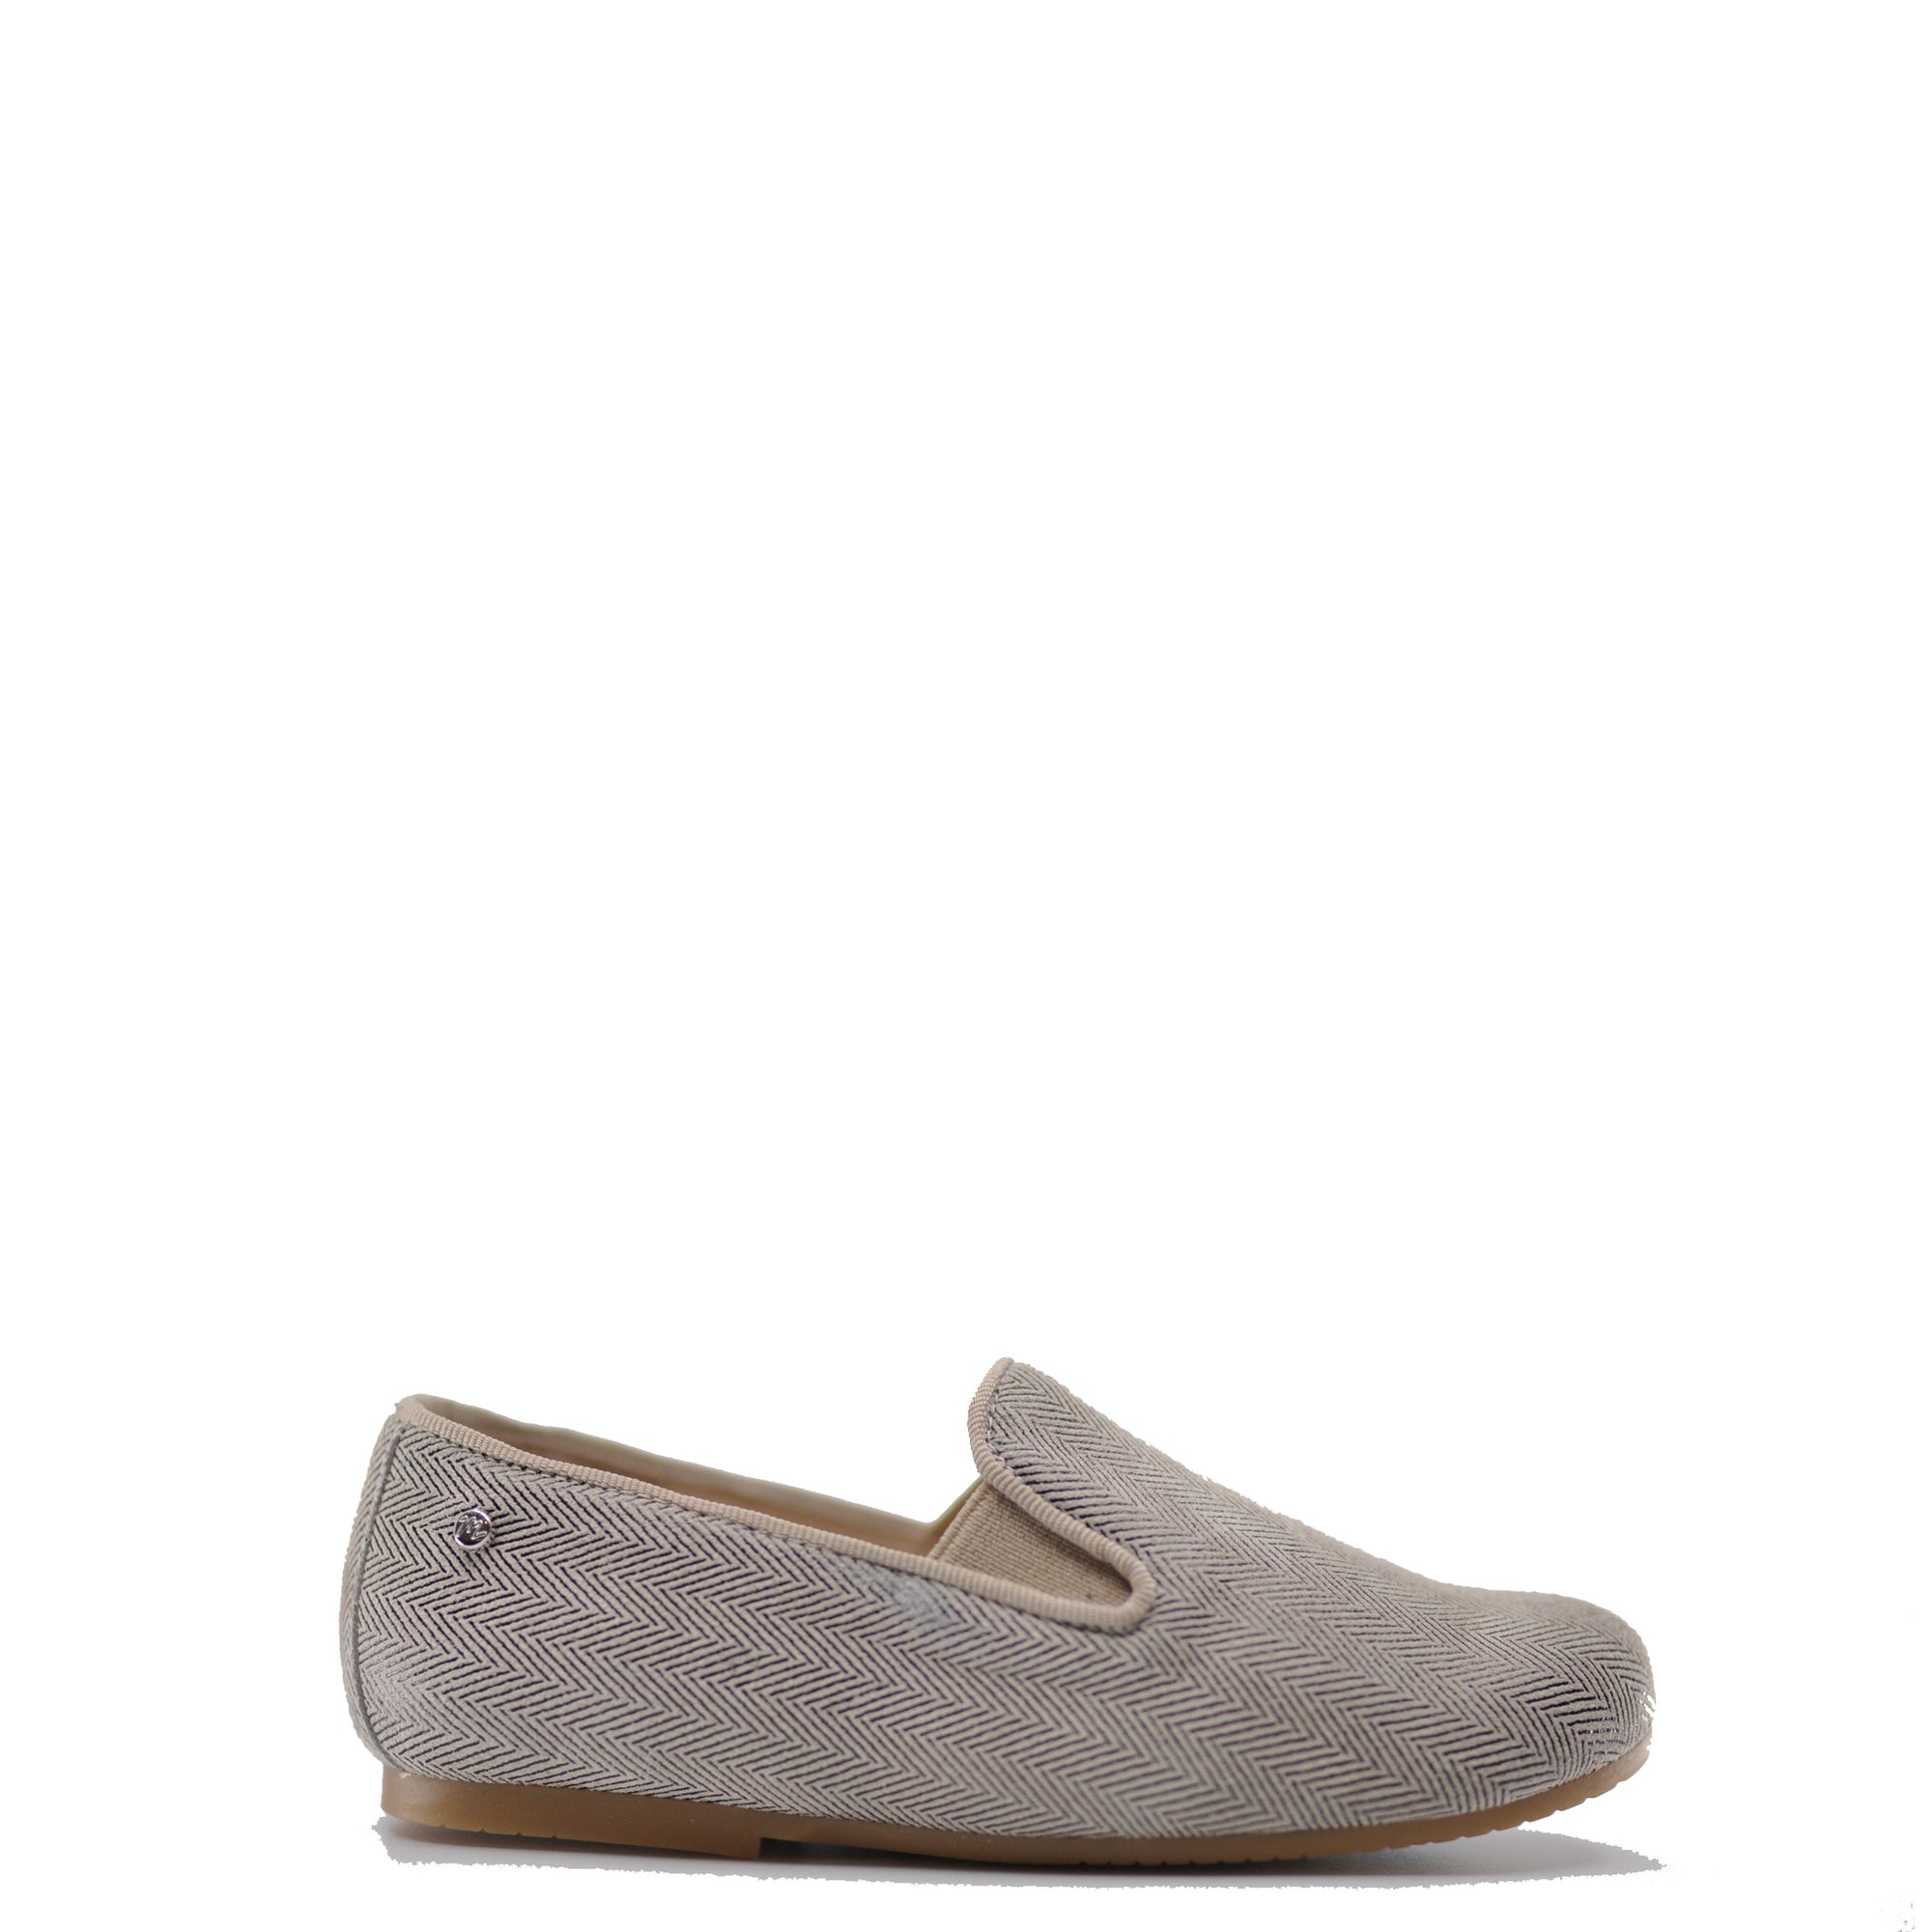 Manuela Taupe Herringbone Smoking Loafer-Tassel Children Shoes